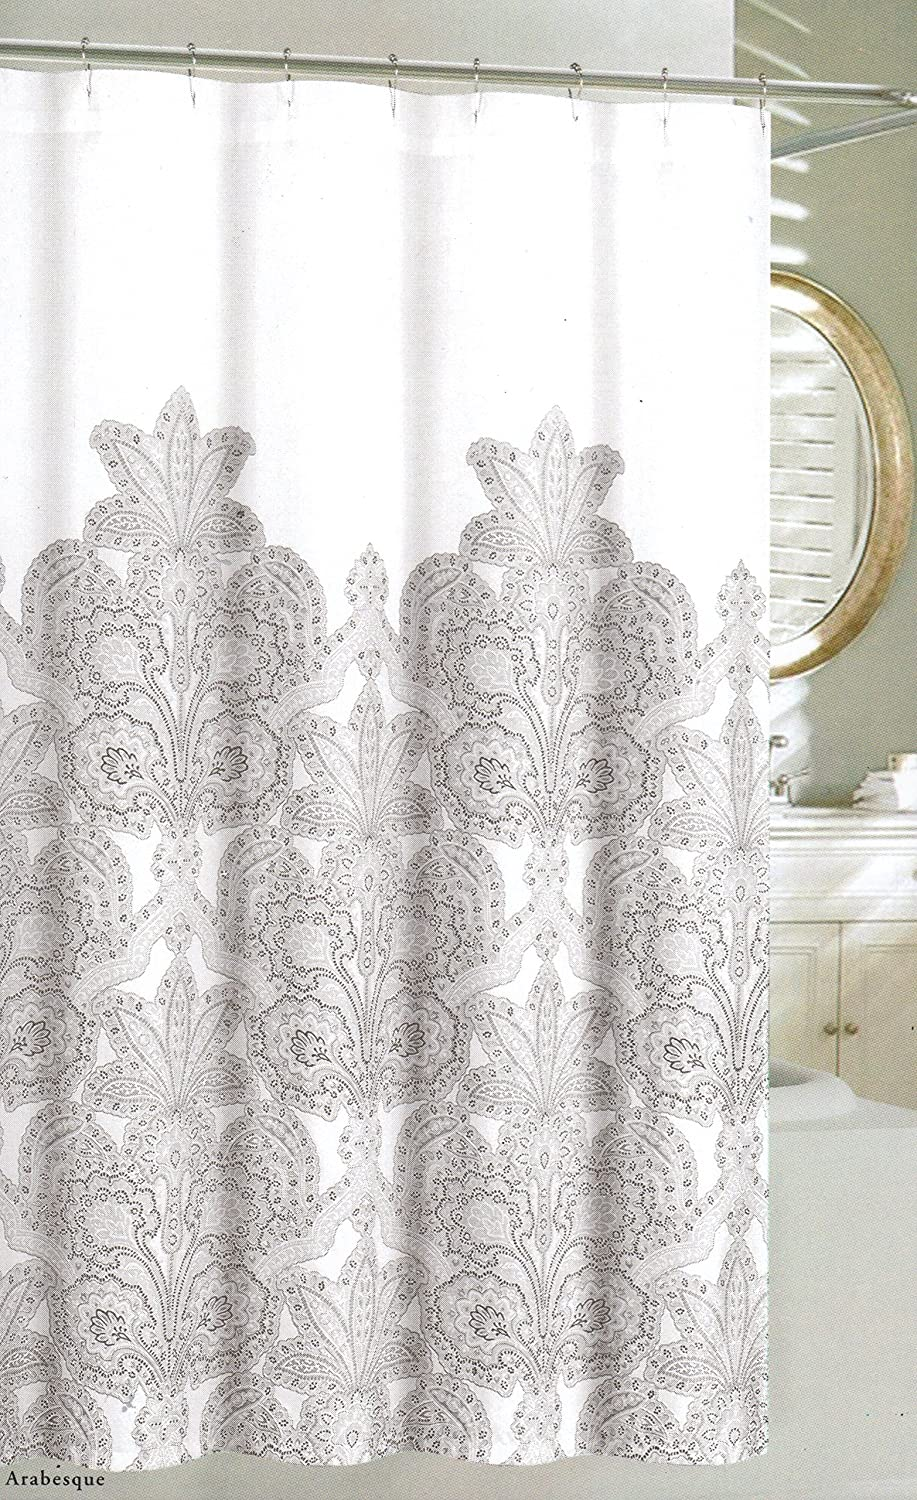 Nicole Miller Home Fabric Shower Curtain Grey Floral Lace Medallions ...